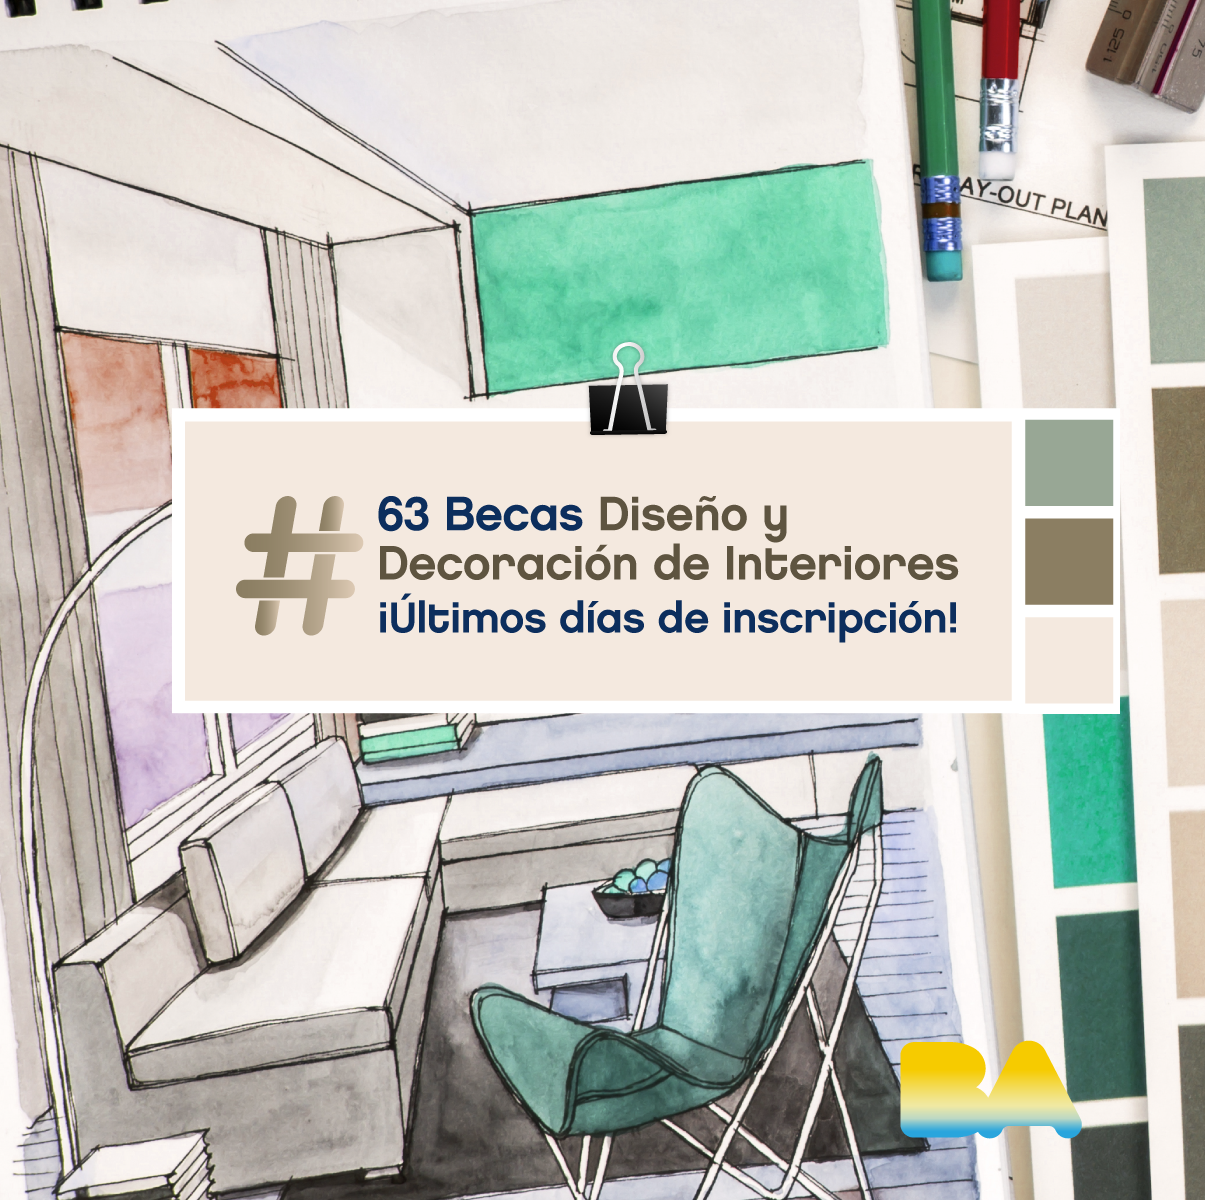 63 becas de dise o y decoraci n de interiores arte for Diseno y decoracion de interiores